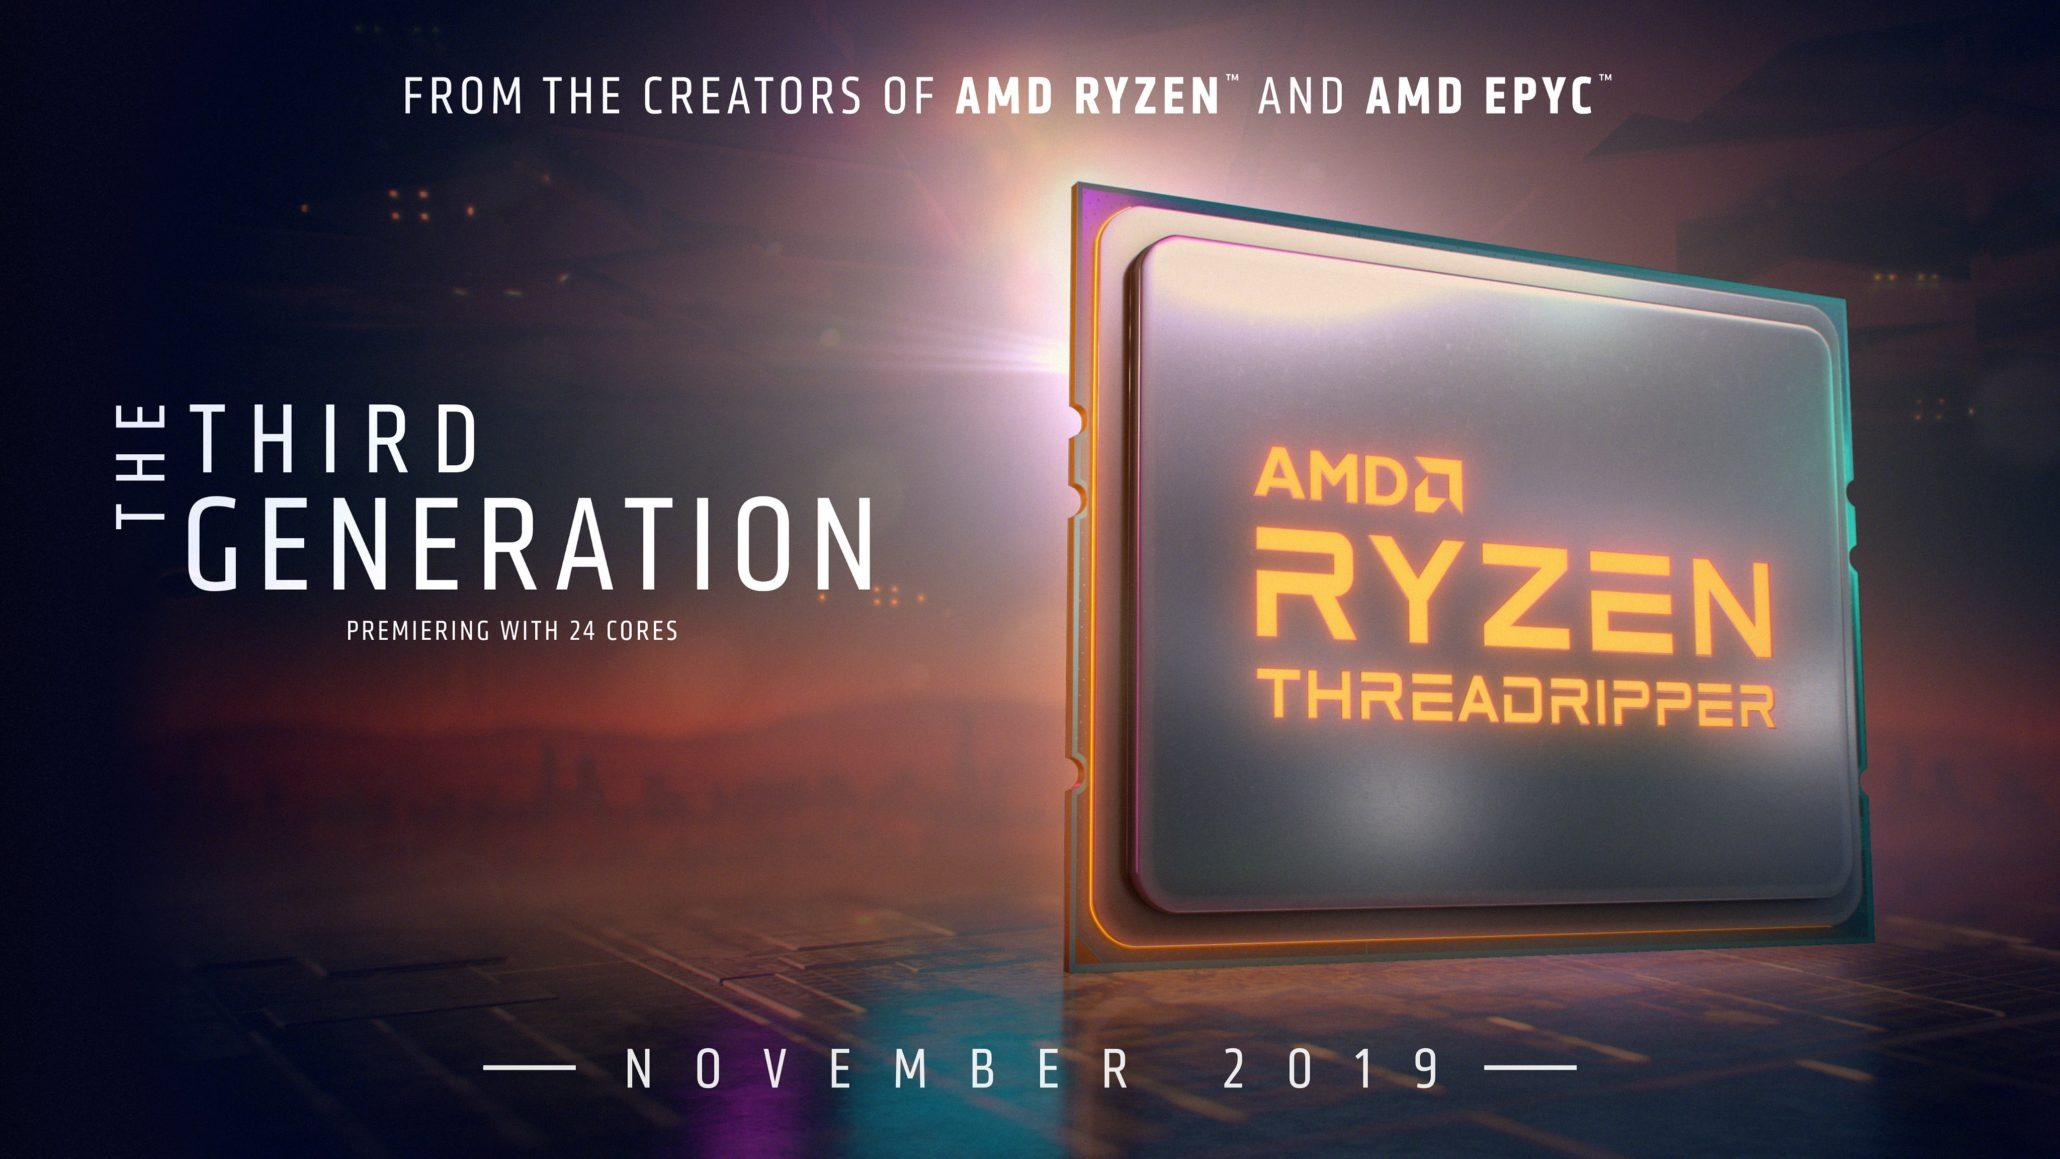 AMD Ryzen Threadripper 3000系列處理器將於11月推出,首推24個Zen2核心版本 - XFastest - AMD-Ryzen-Threadripper-3000-HEDT-CPUs-2060x1159.jpg